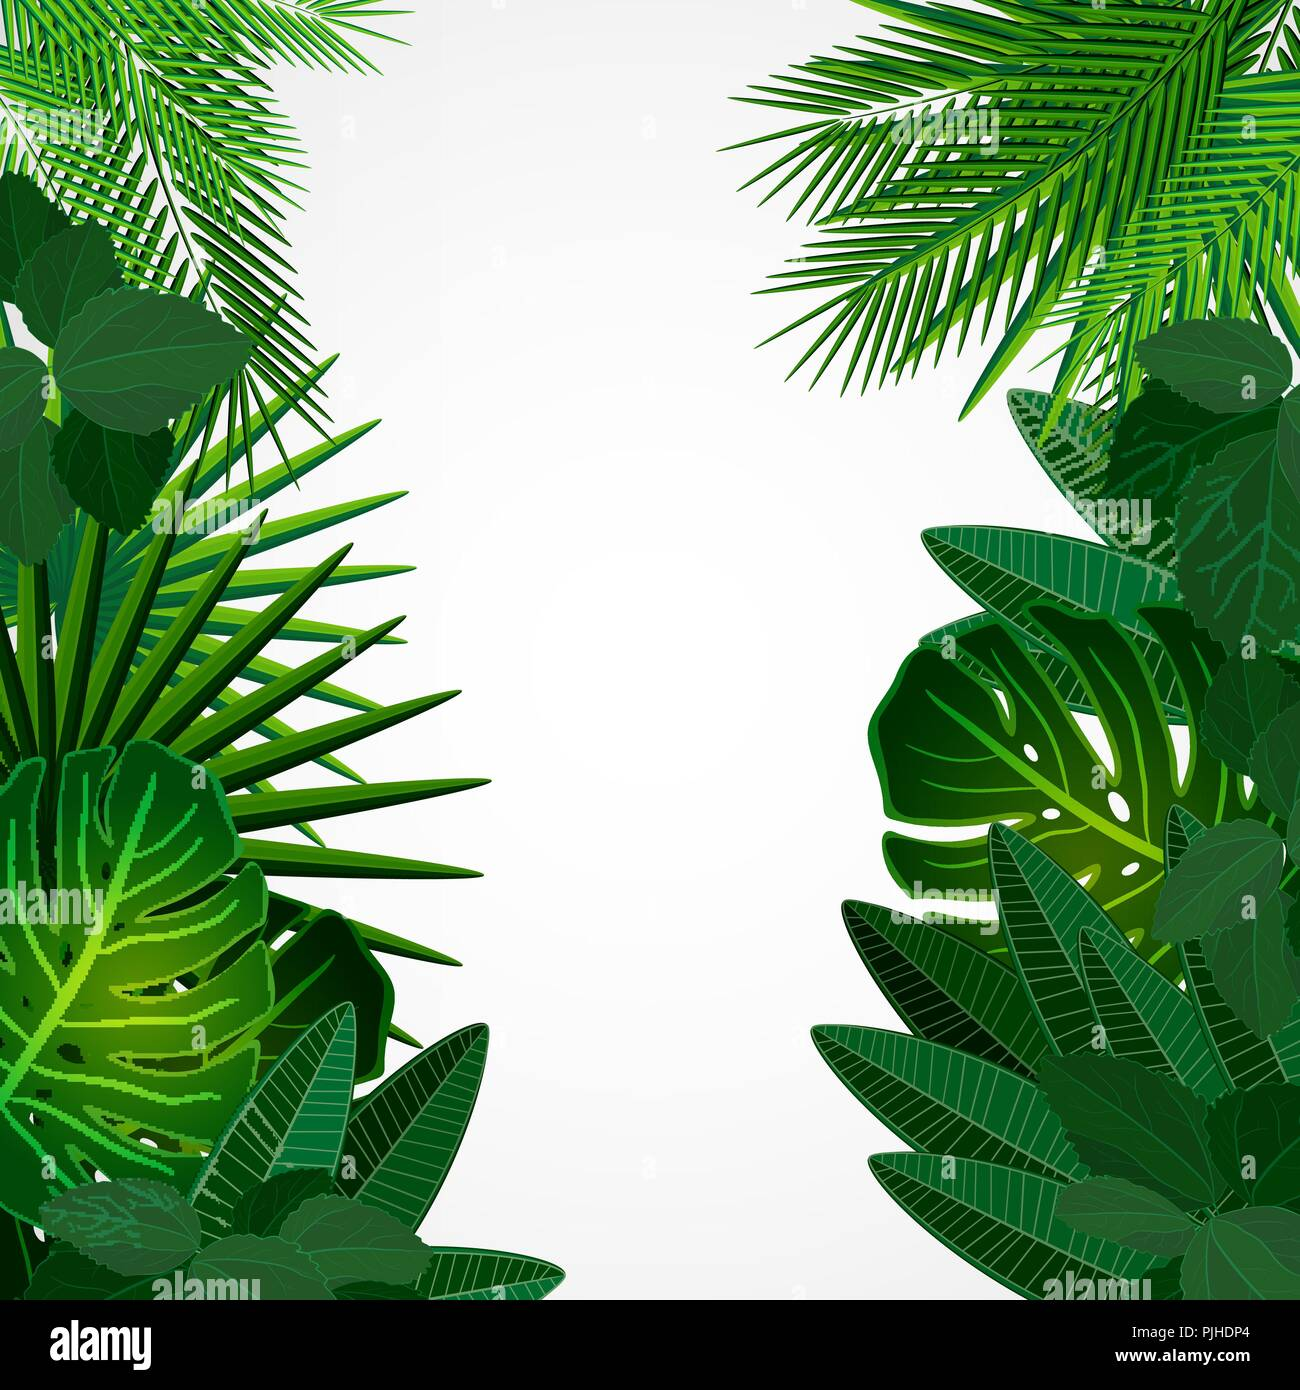 Tropical Leaves Floral Design Background Stock Vector Image Art Alamy Download 26,559 tropical free vectors. https www alamy com tropical leaves floral design background image217972220 html